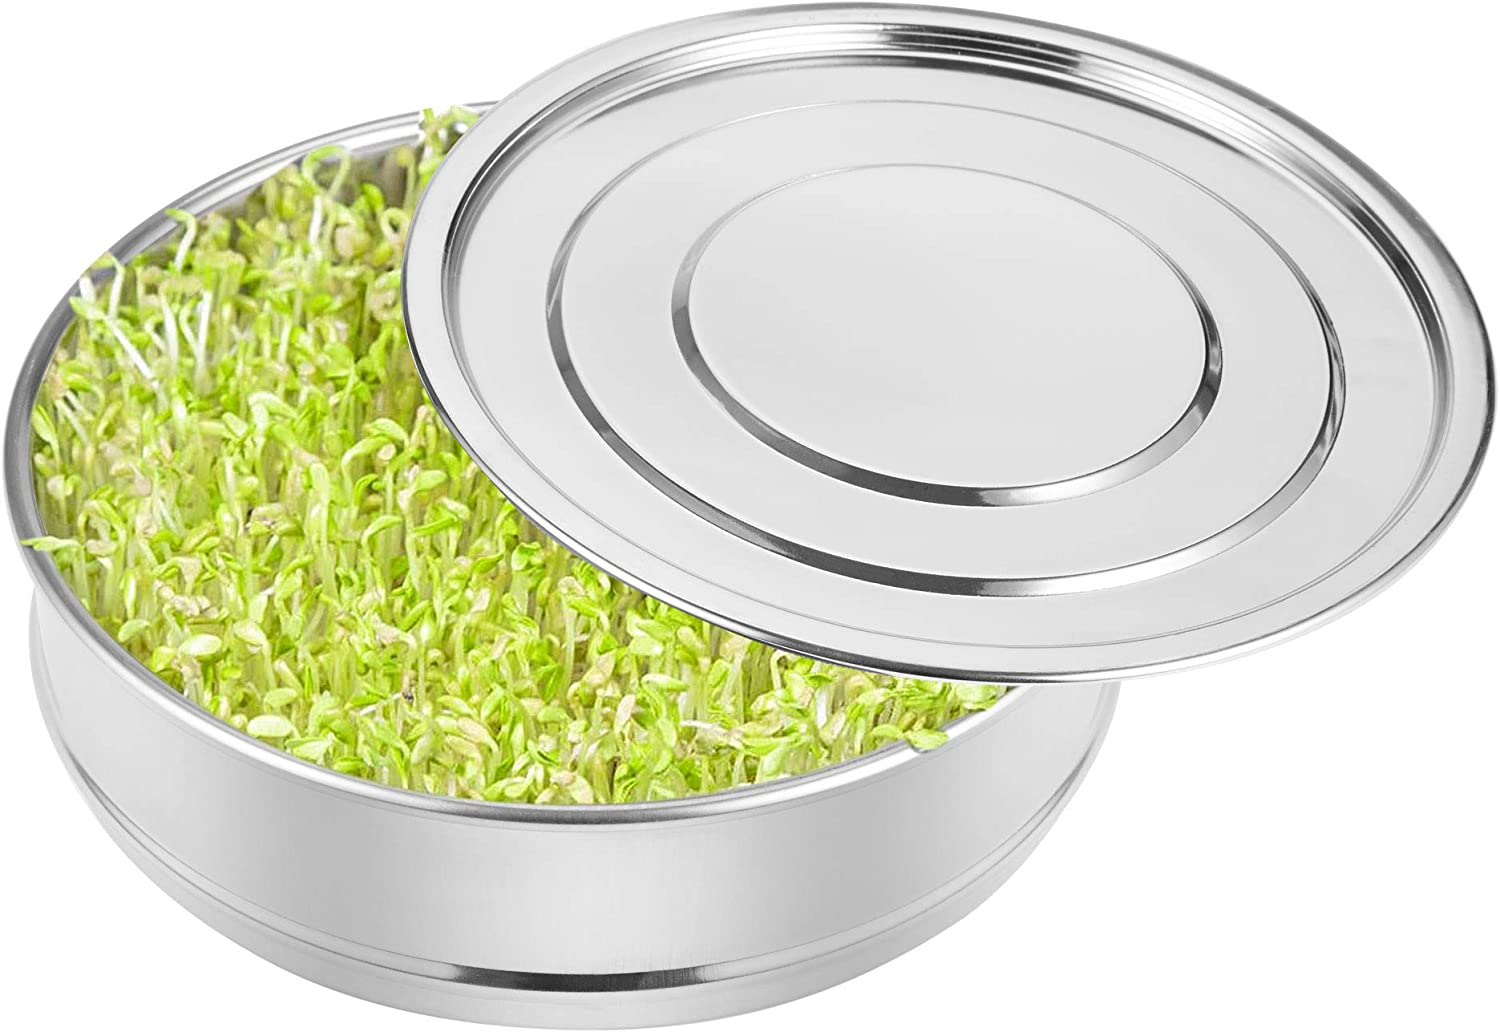 PURCOULEUR Stainless Steel Seed Sprouting Tray 8.3 Inch Kitchen Seed Sprouter Mesh Germination Trays Seed Germinator Starter Tray Growing Kit for Organic Broccoli Sprouts, Bean Sprouts